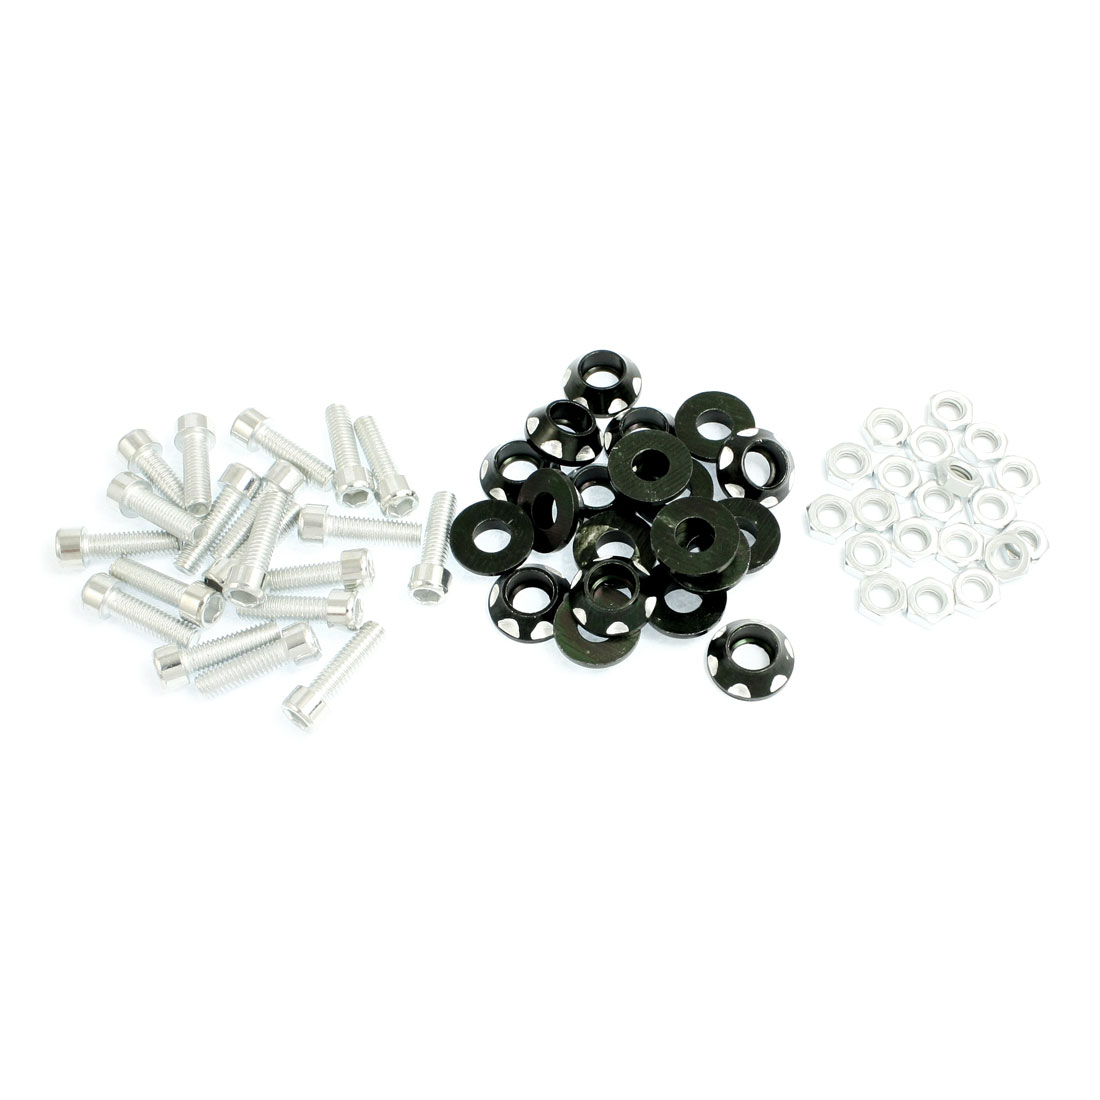 20 Pcs Silver Tone Black Alloy License Plate Bolt Screw for Car